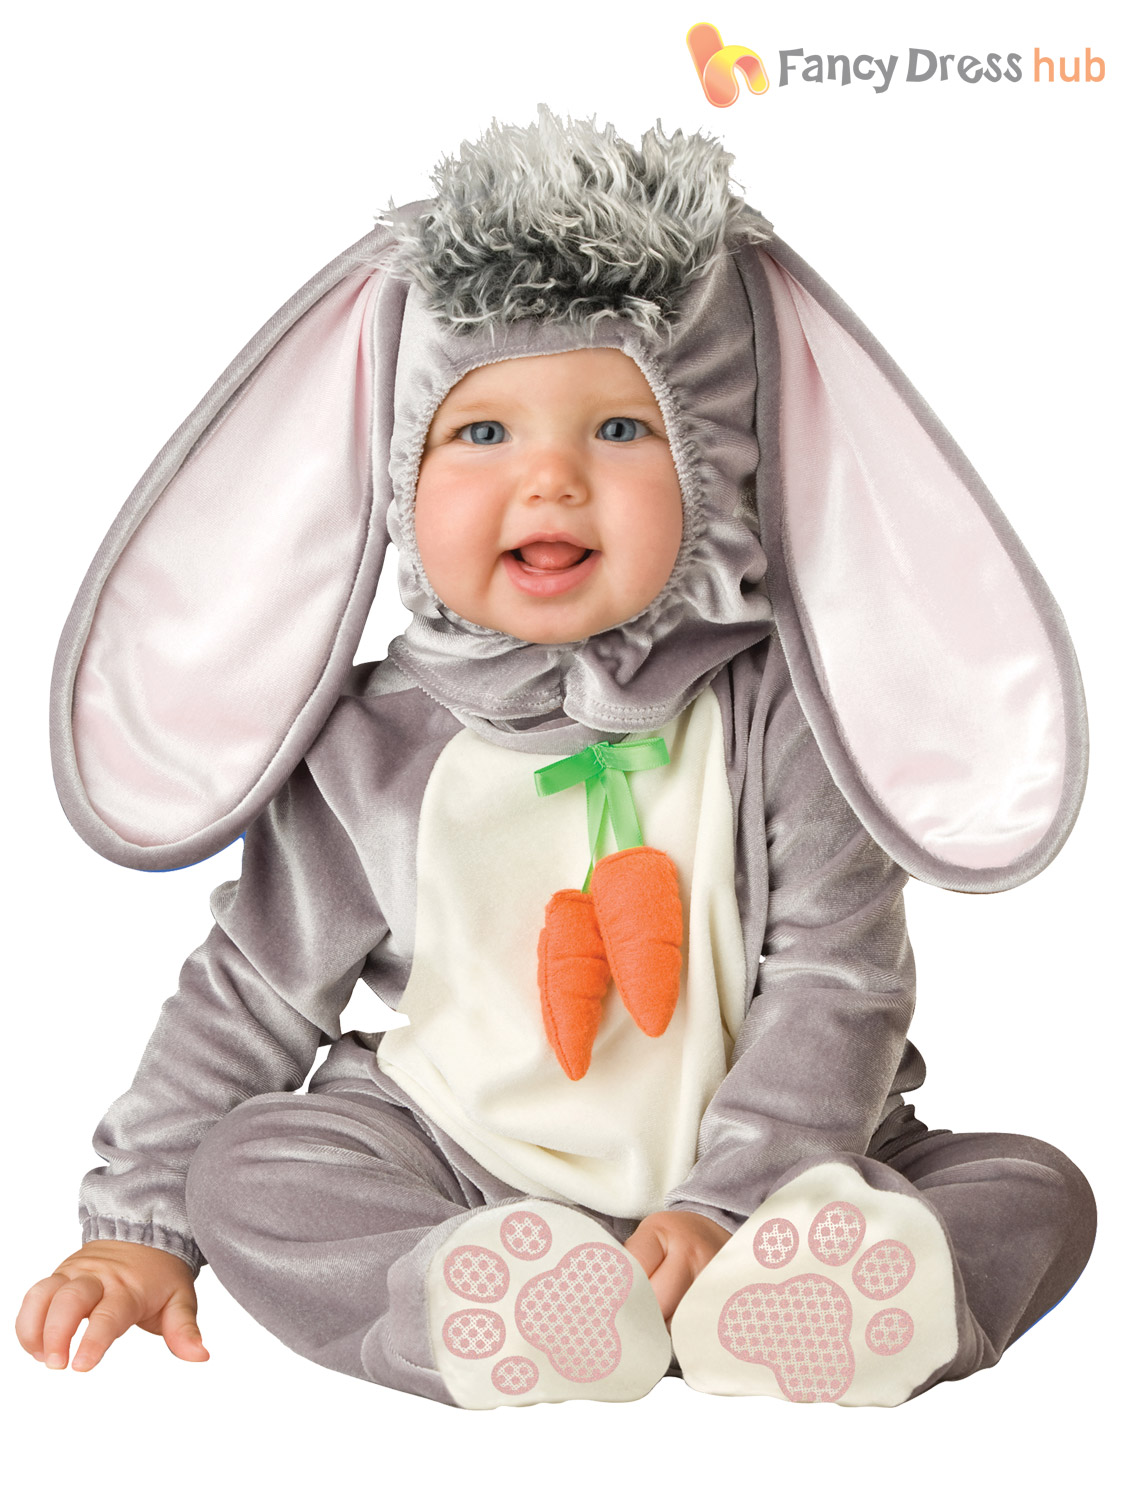 8794a3427 Boys Girls Baby Bunny Rabbit Easter Fancy Dress Costume Infant 6 12 ...